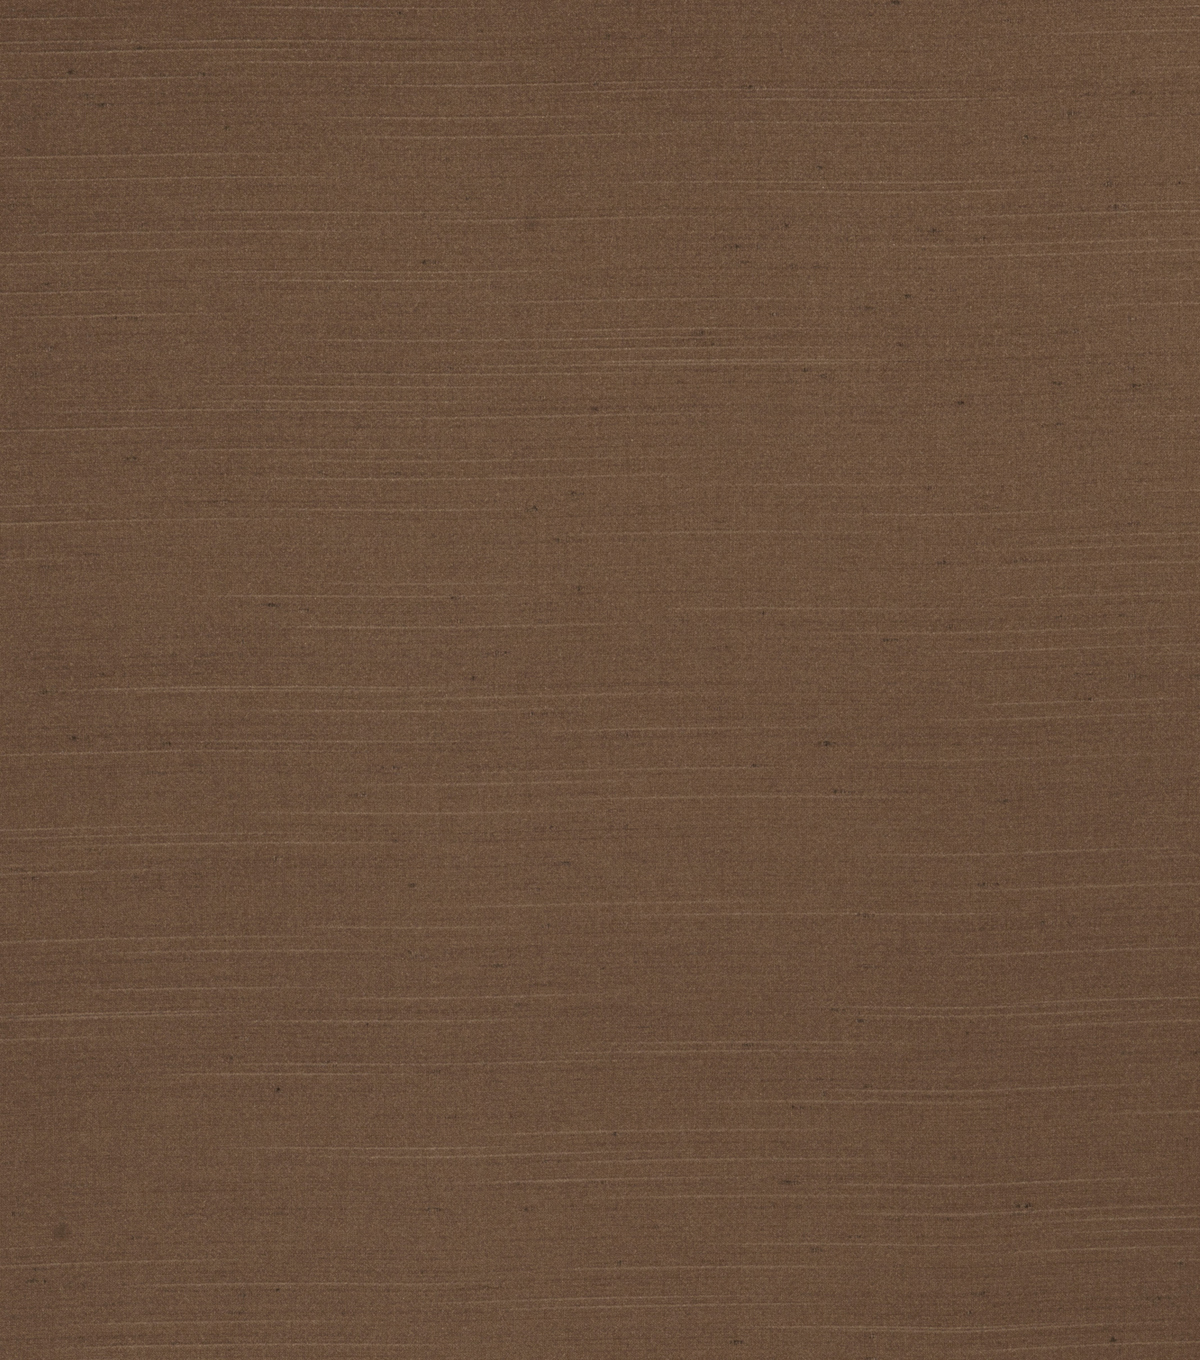 Eaton Square Multi-Purpose Decor Fabric 55\u0022-Amber/Latte